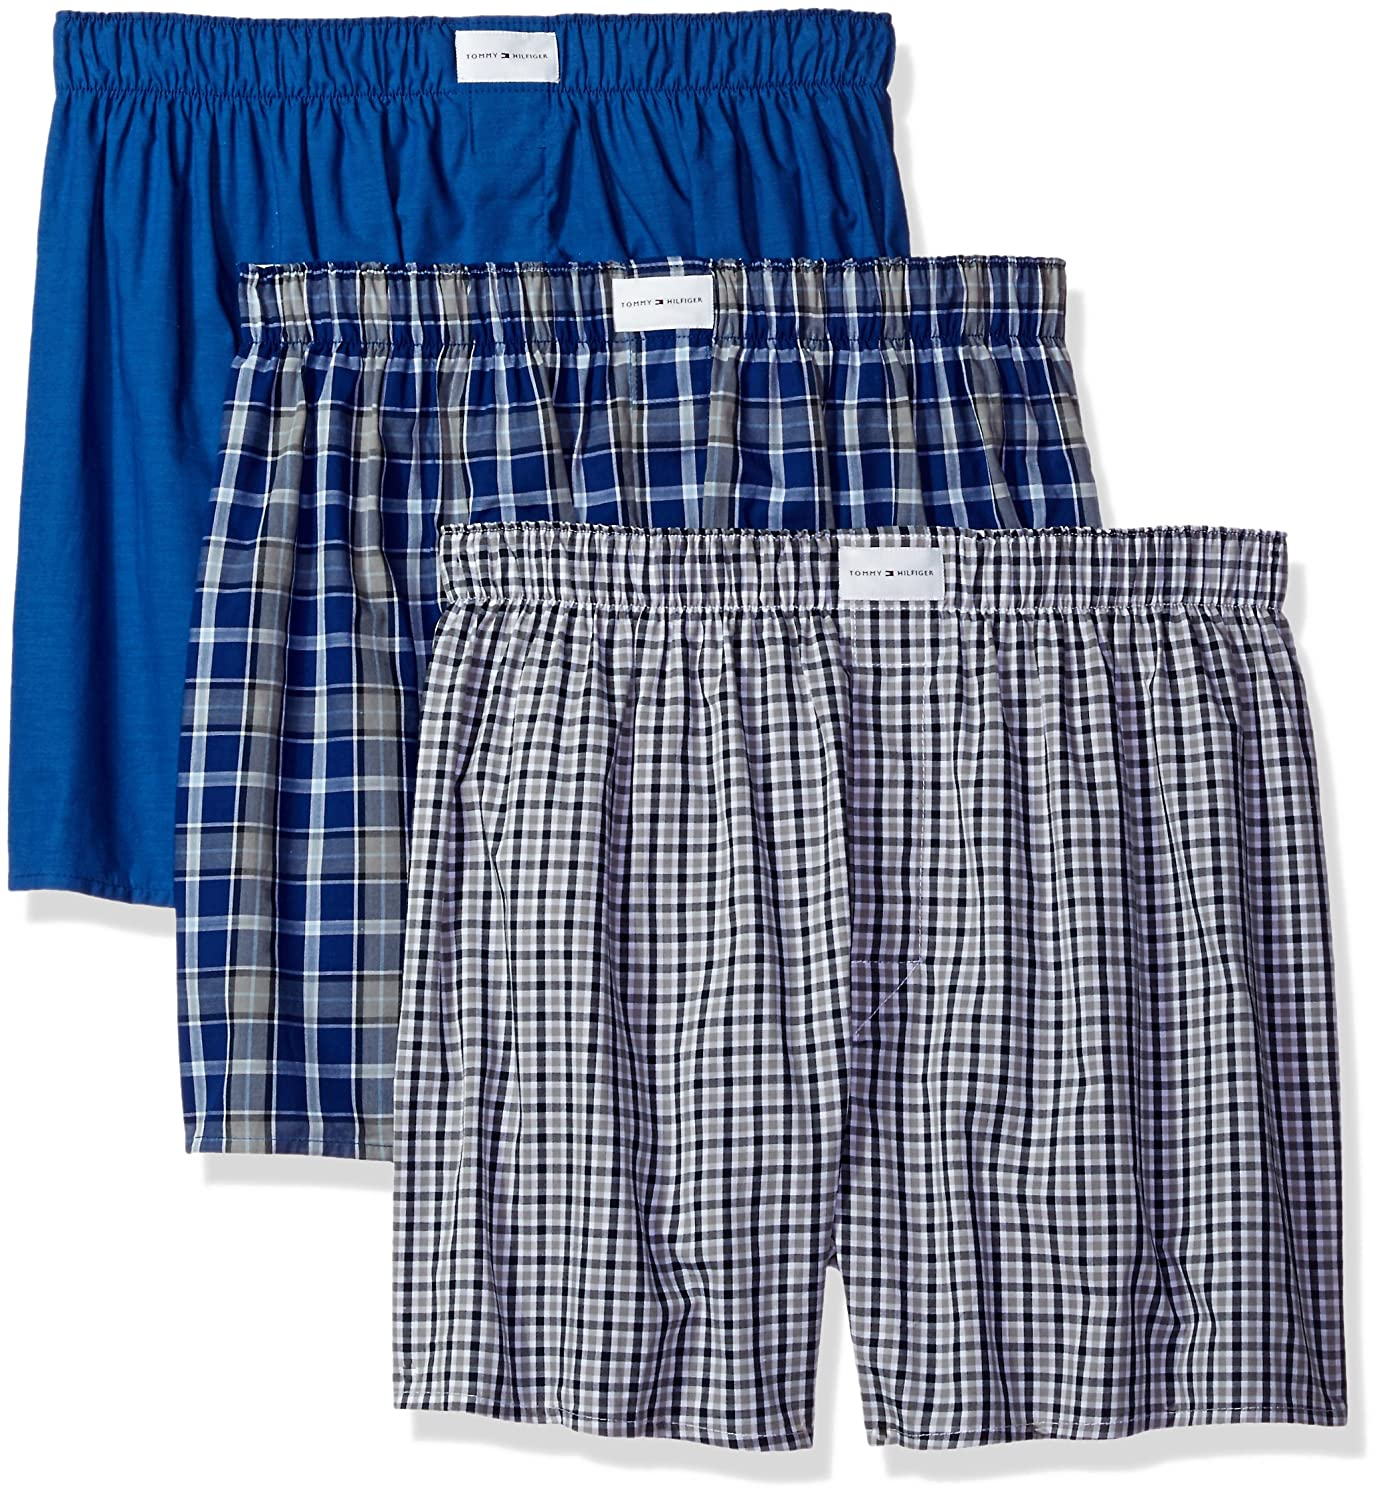 Tommy Hilfiger Woven Boxer 3-Pack 09TV050